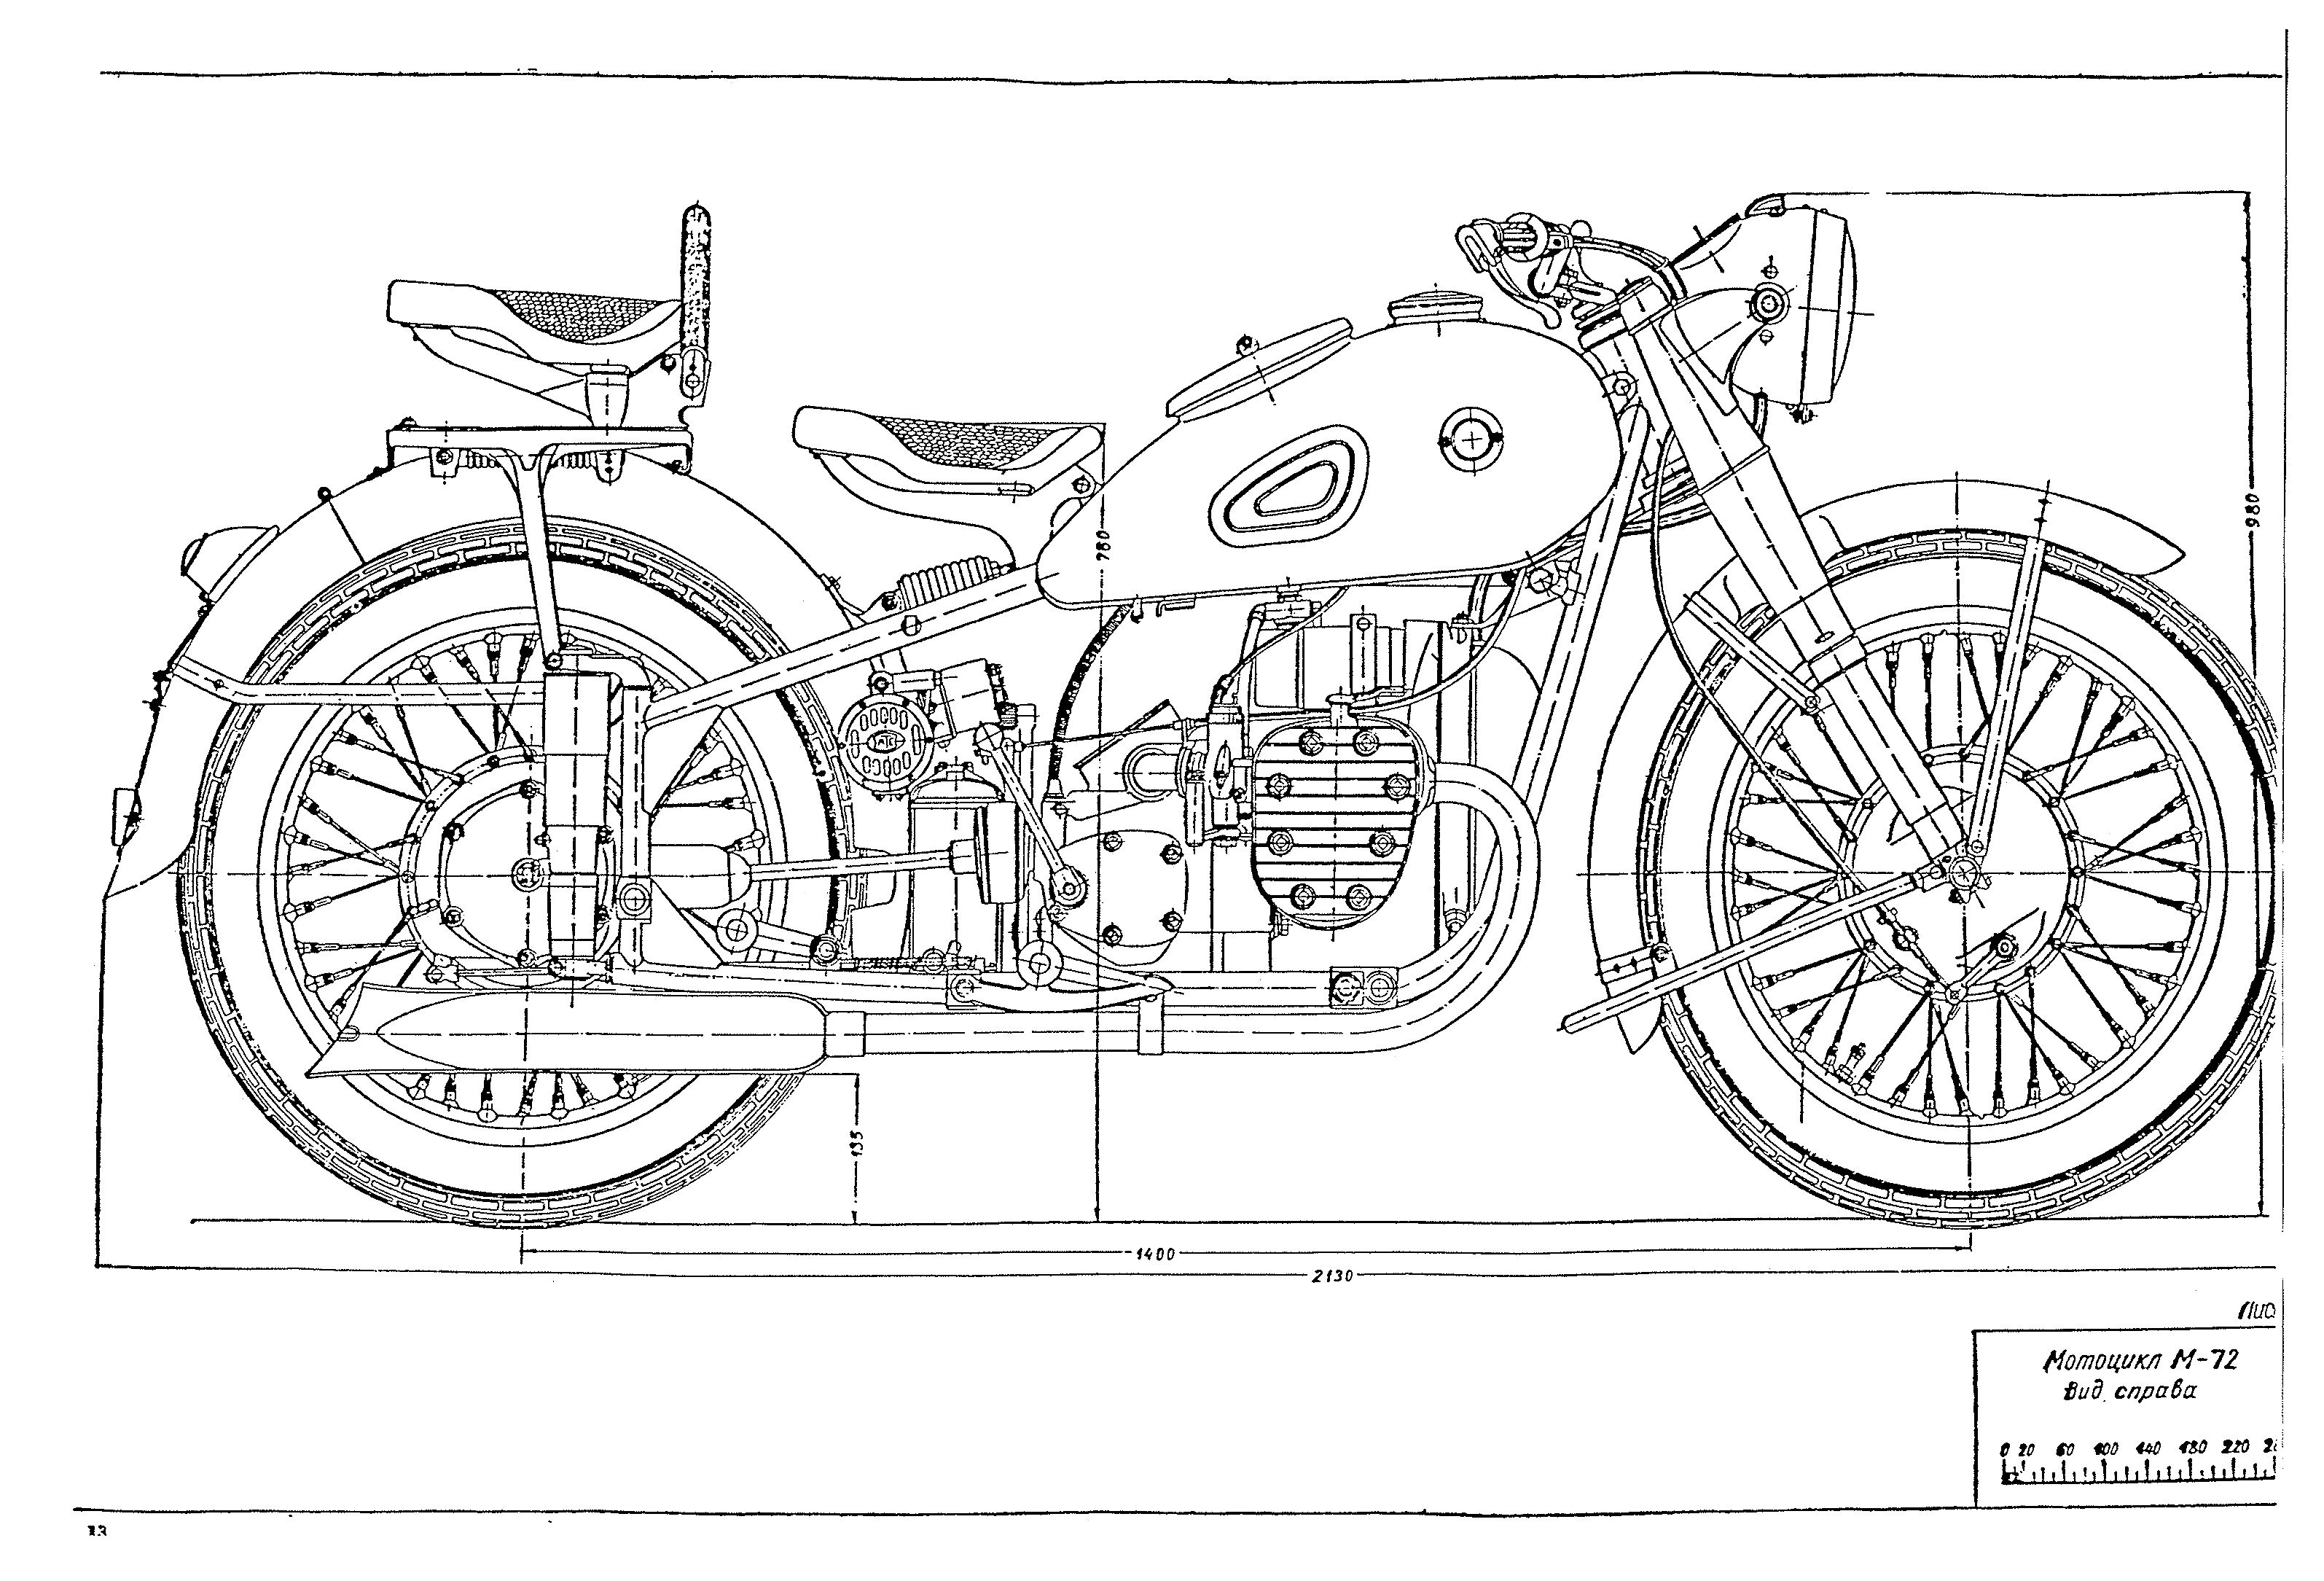 Motorcycle Blueprints